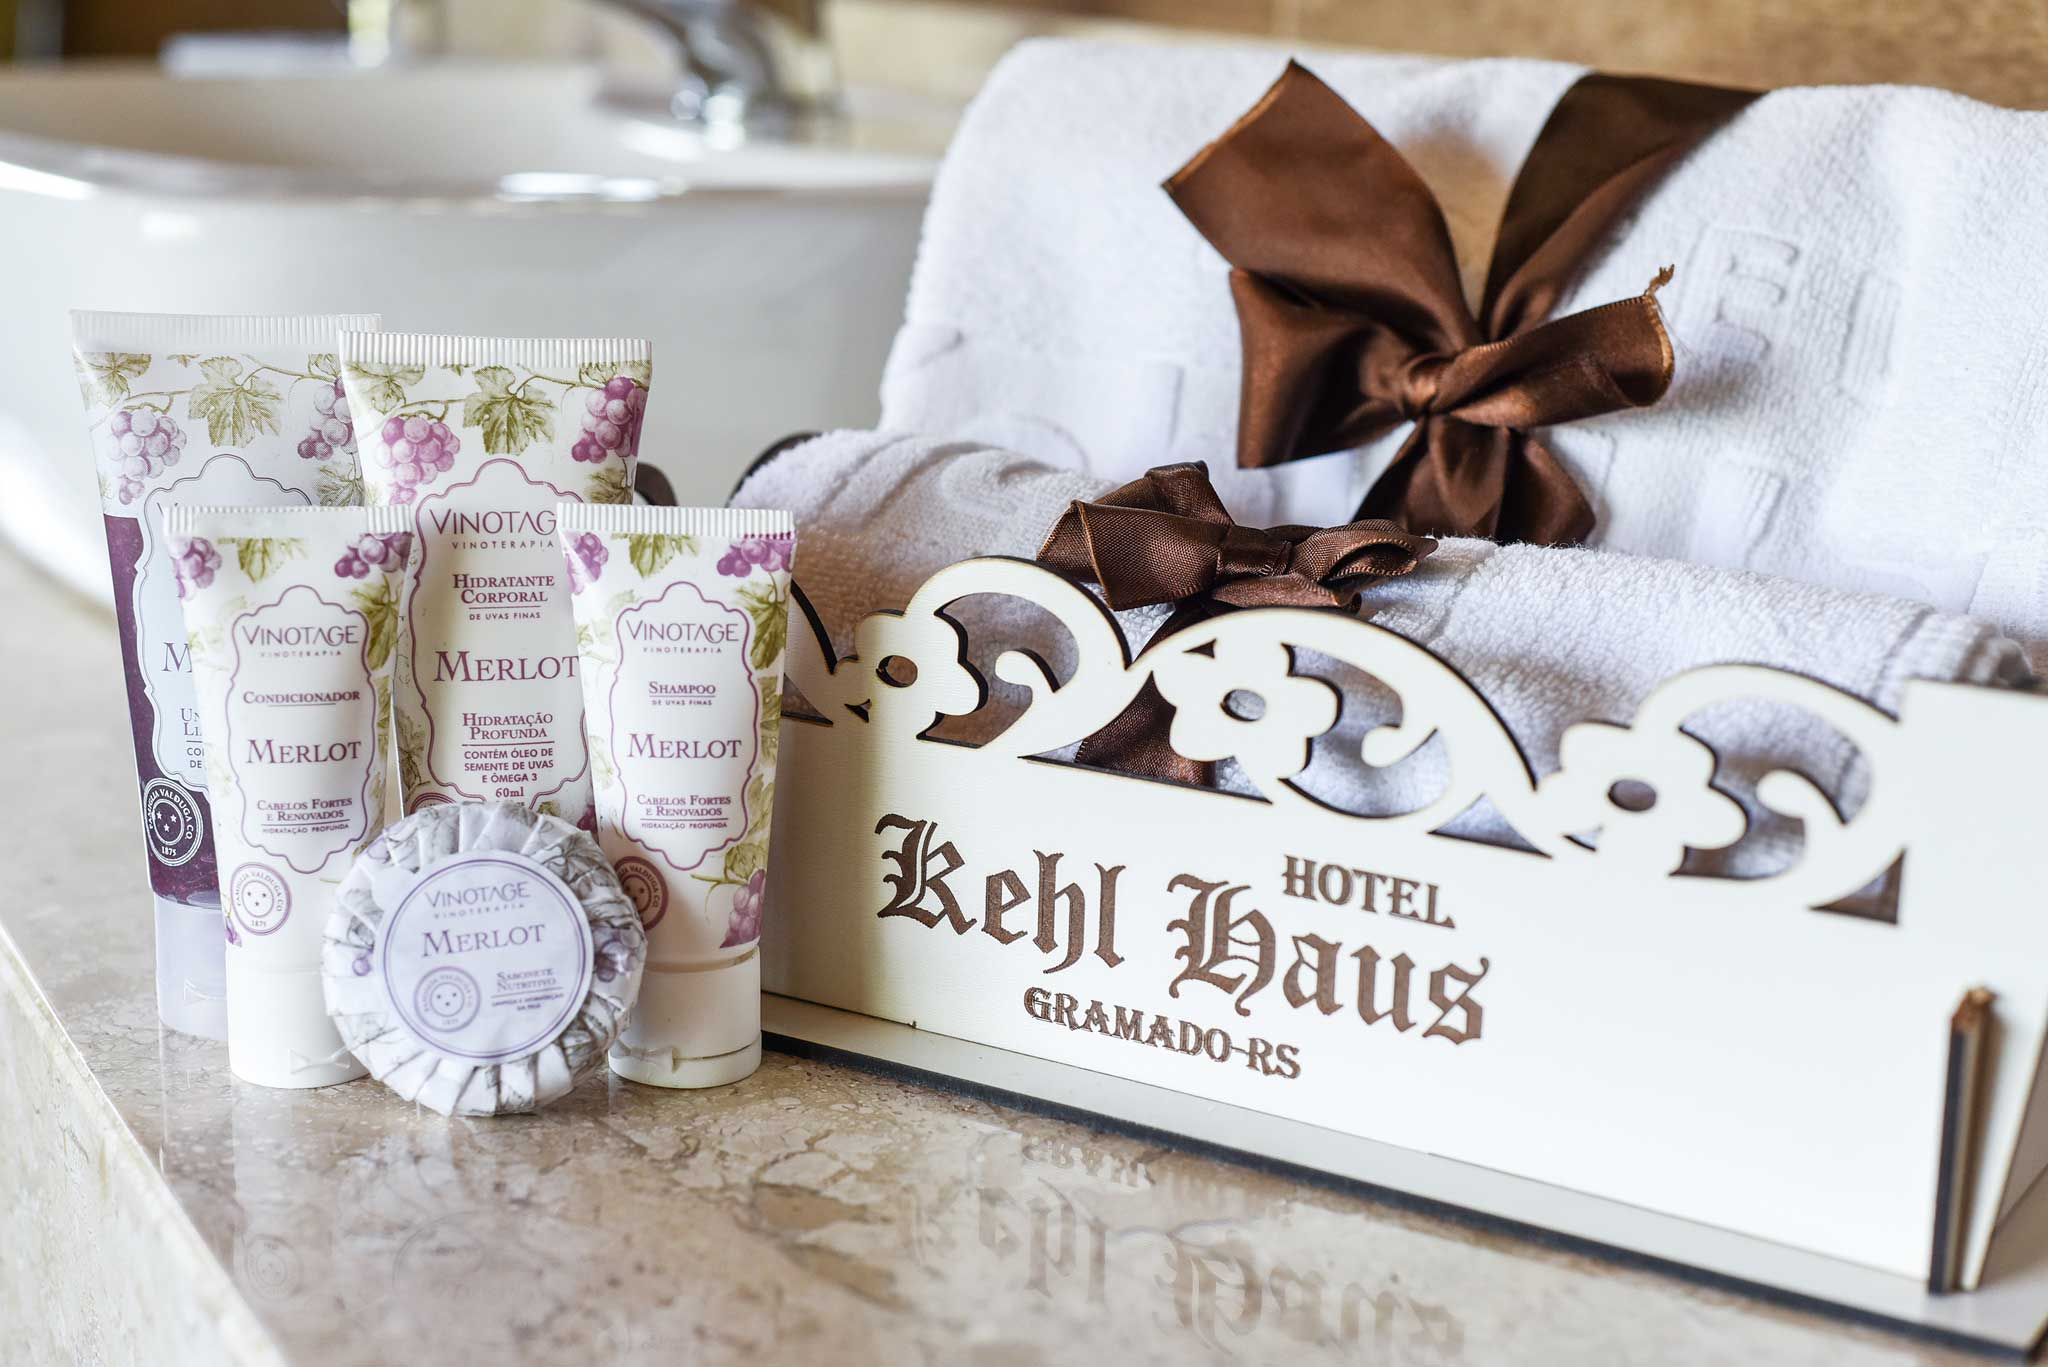 Amenities Hotel Kehl Haus